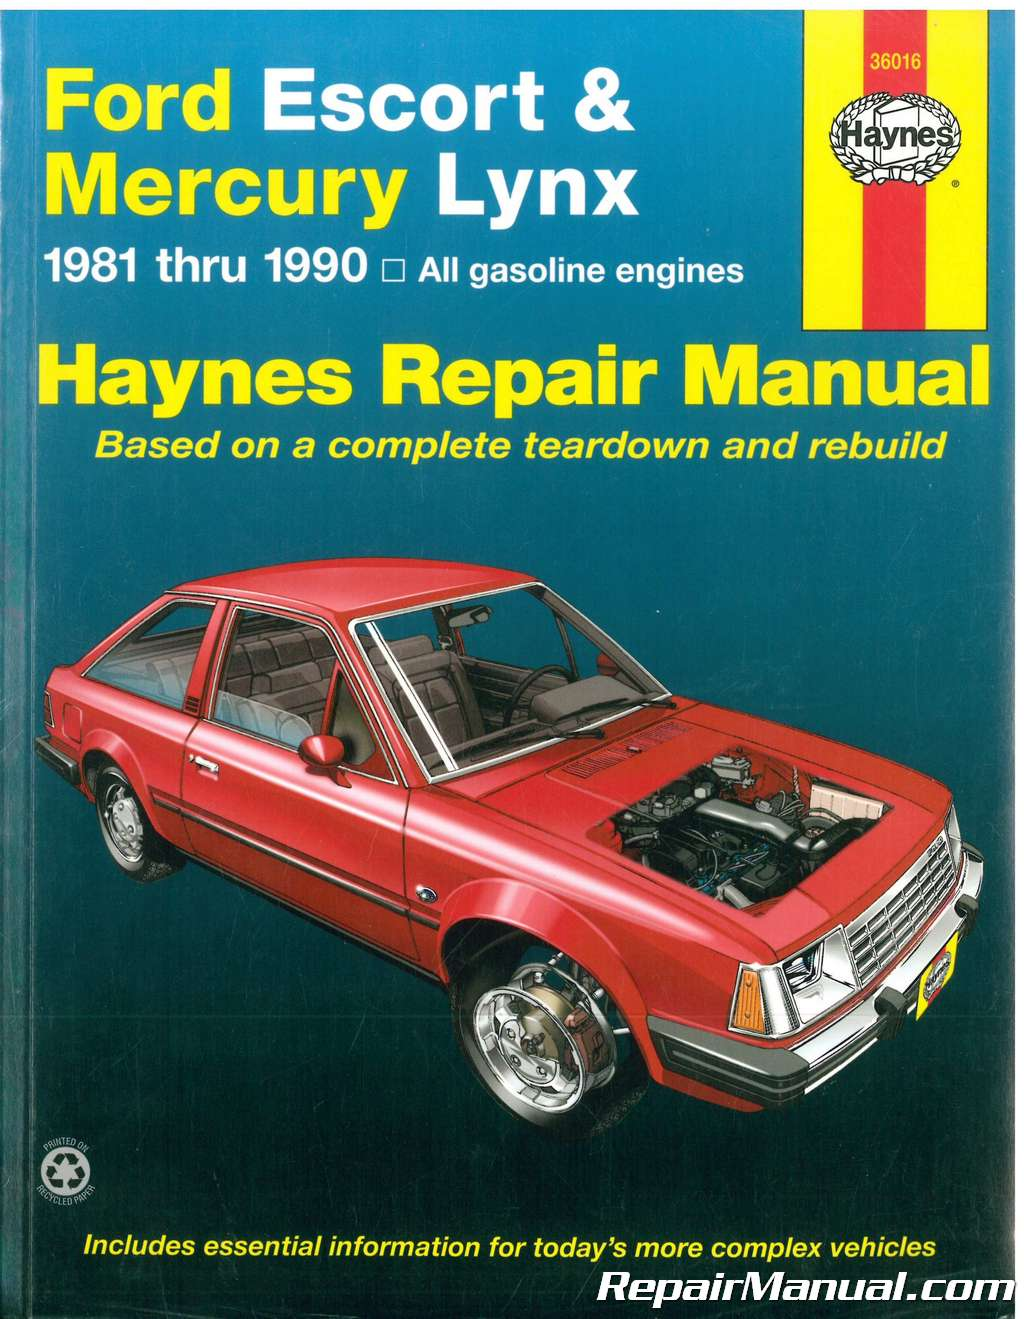 haynes ford escort mercury lynx 1981 1990 auto repair manual rh repairmanual com Ford 600 Manual ford lynx ghia service manual